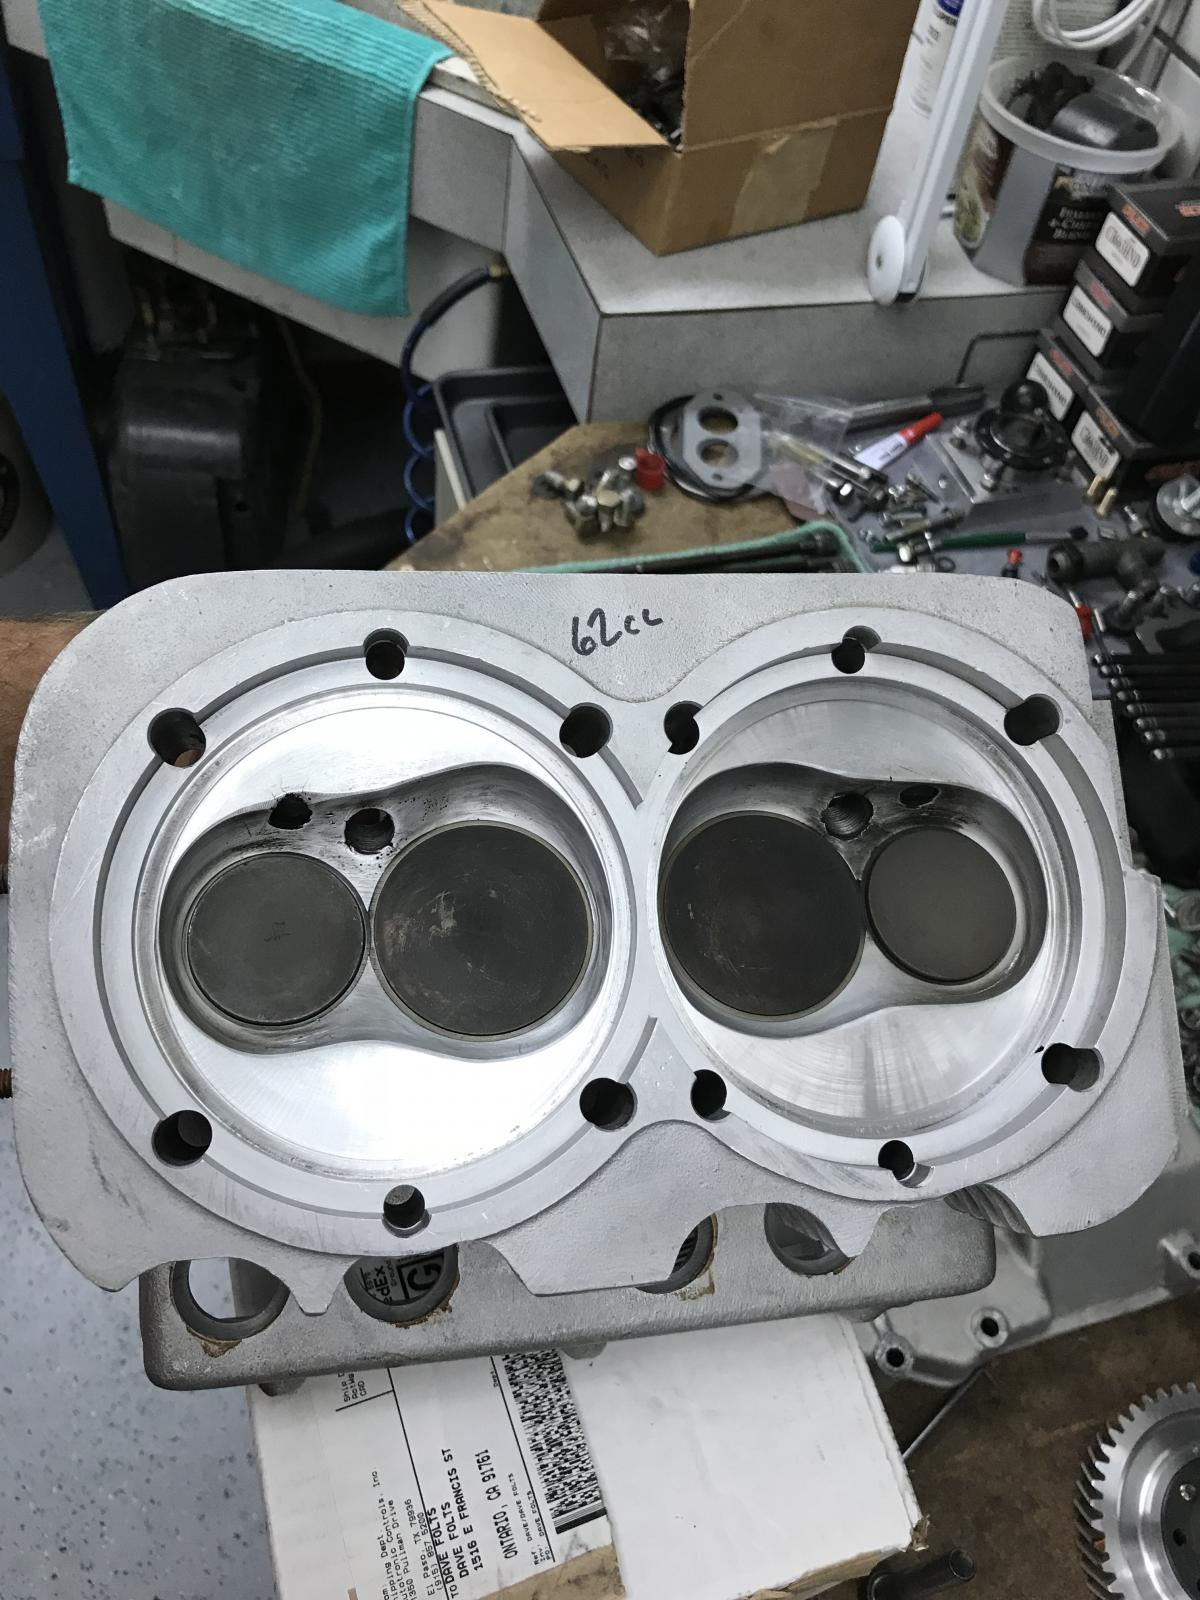 Autocraft engine